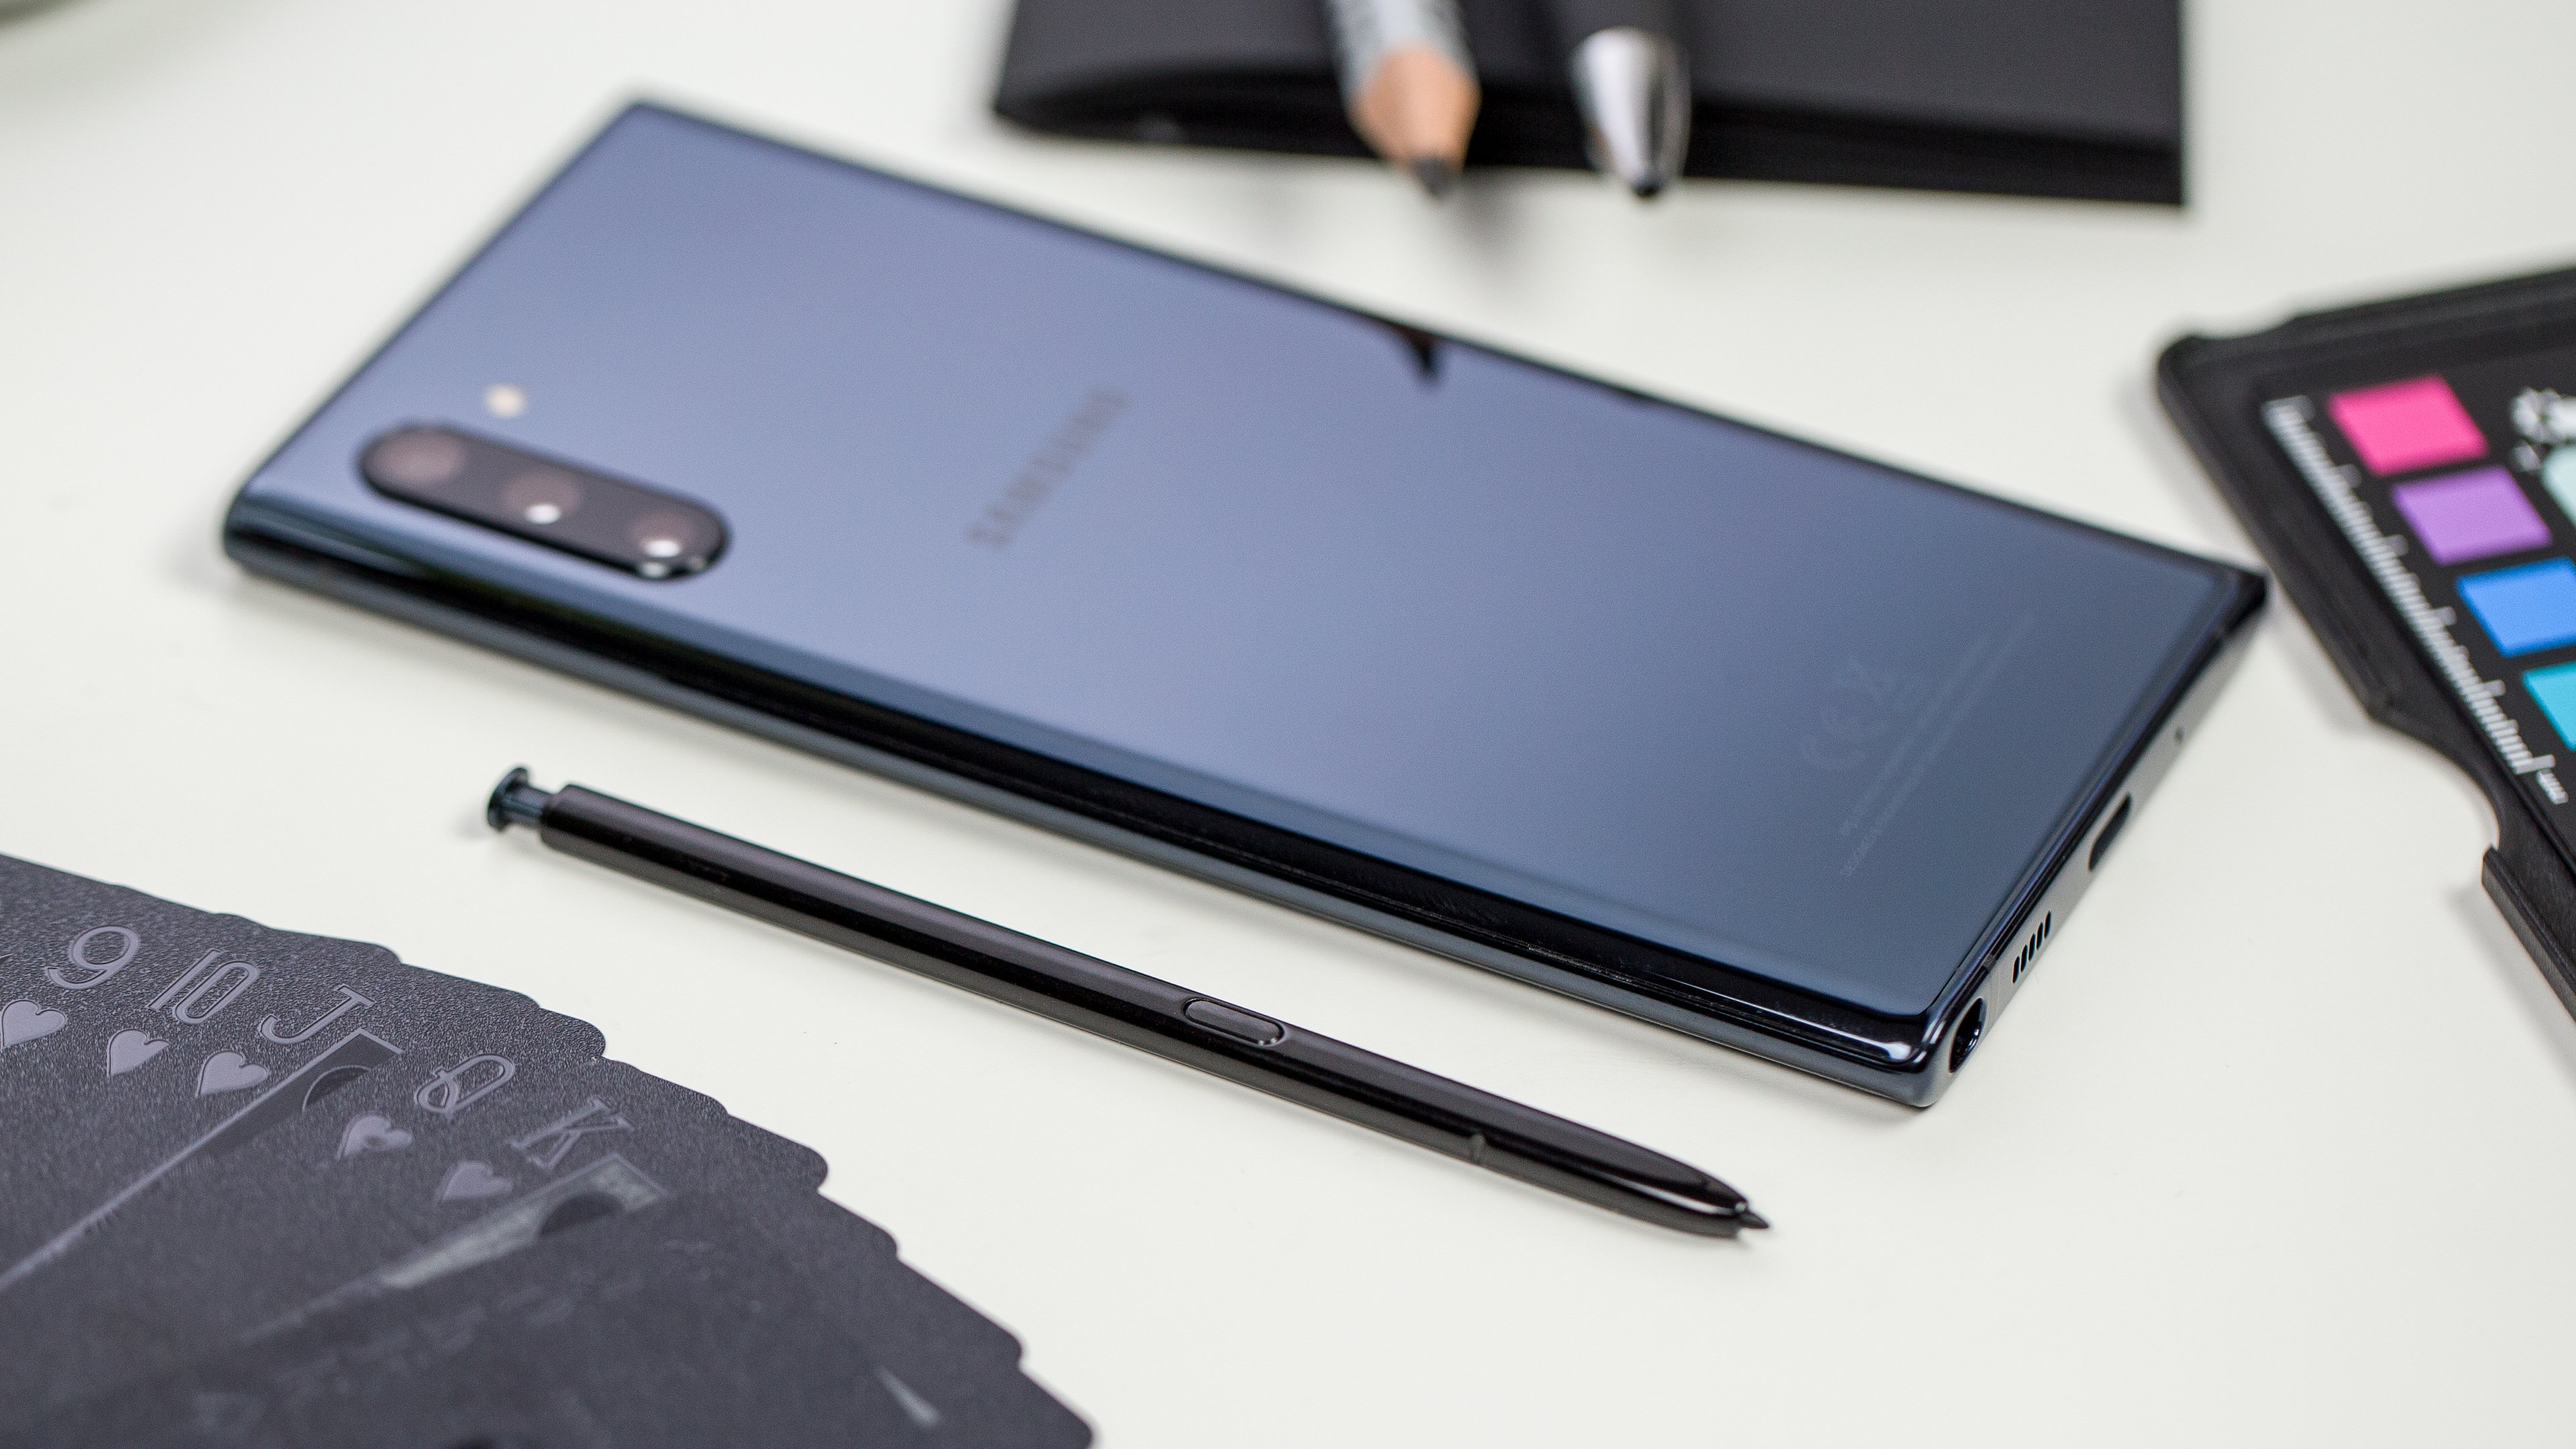 Image result for Galaxy Note 10  - hd images